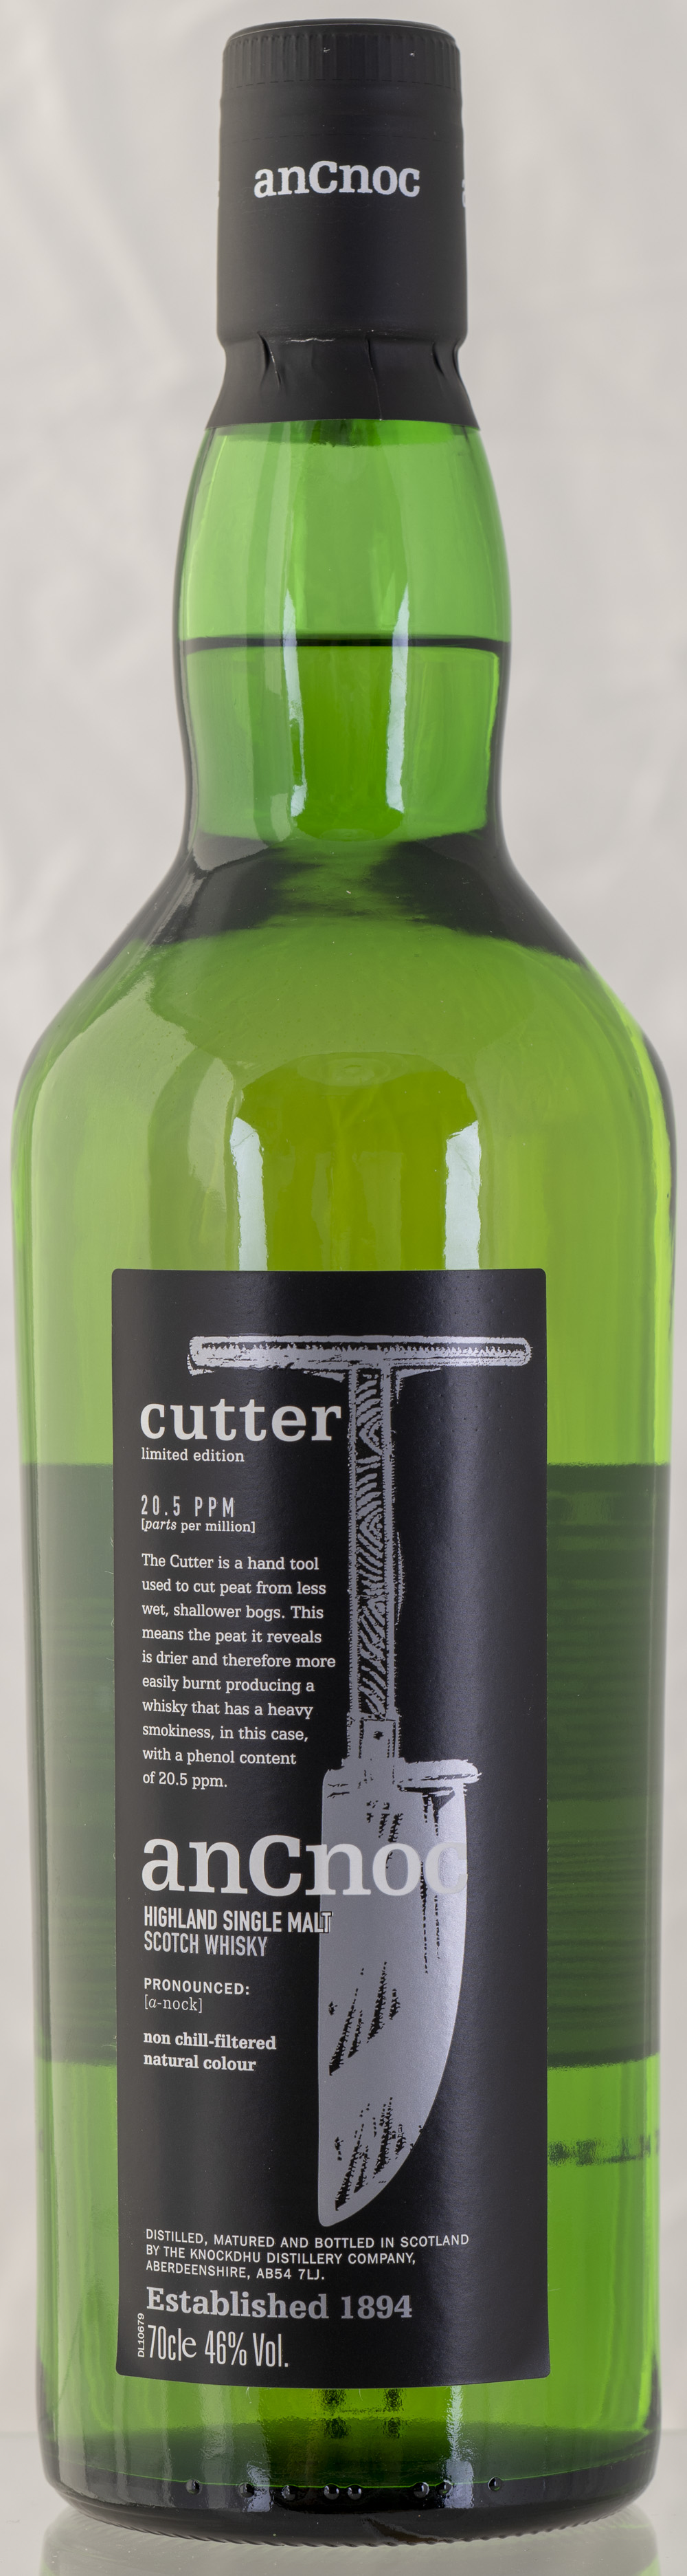 Billede: PHC_2247 - AnCnoc Cutter - bottle front.jpg